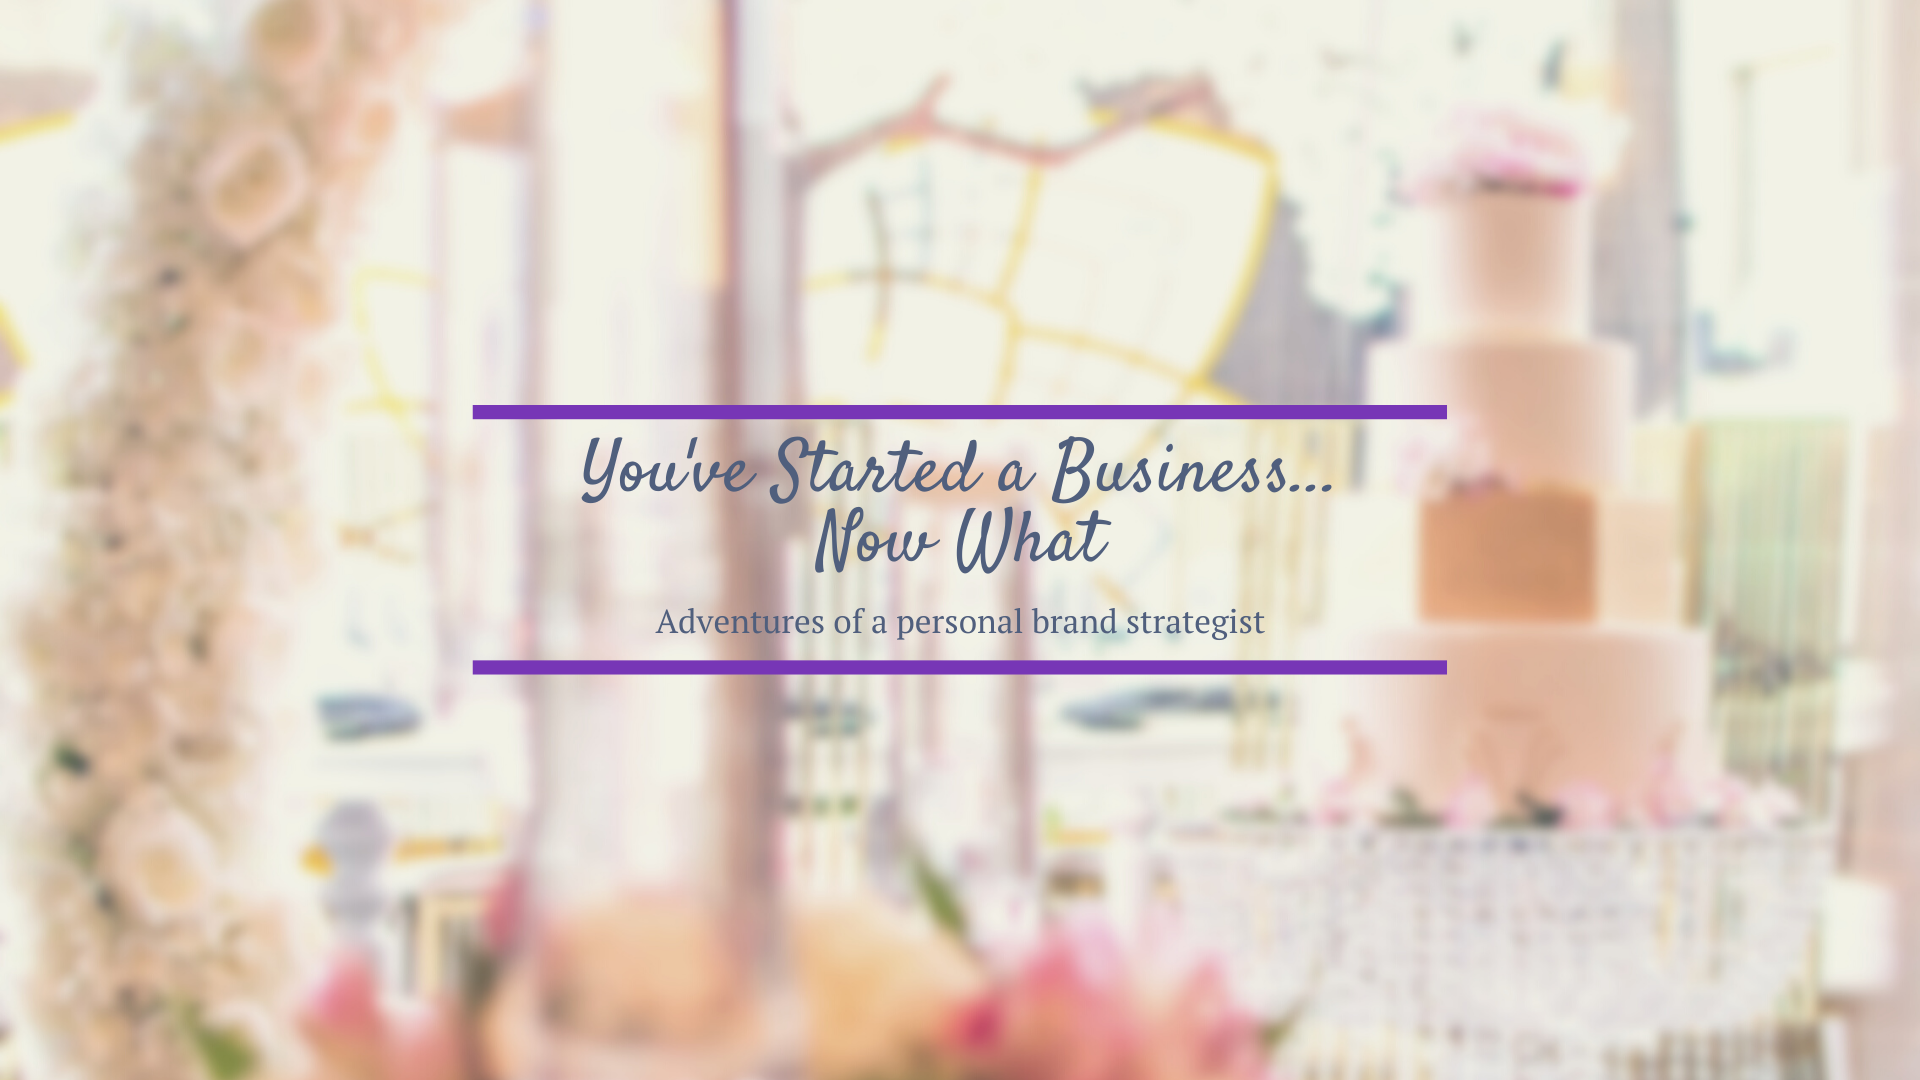 You're Starting a Business...Now What?